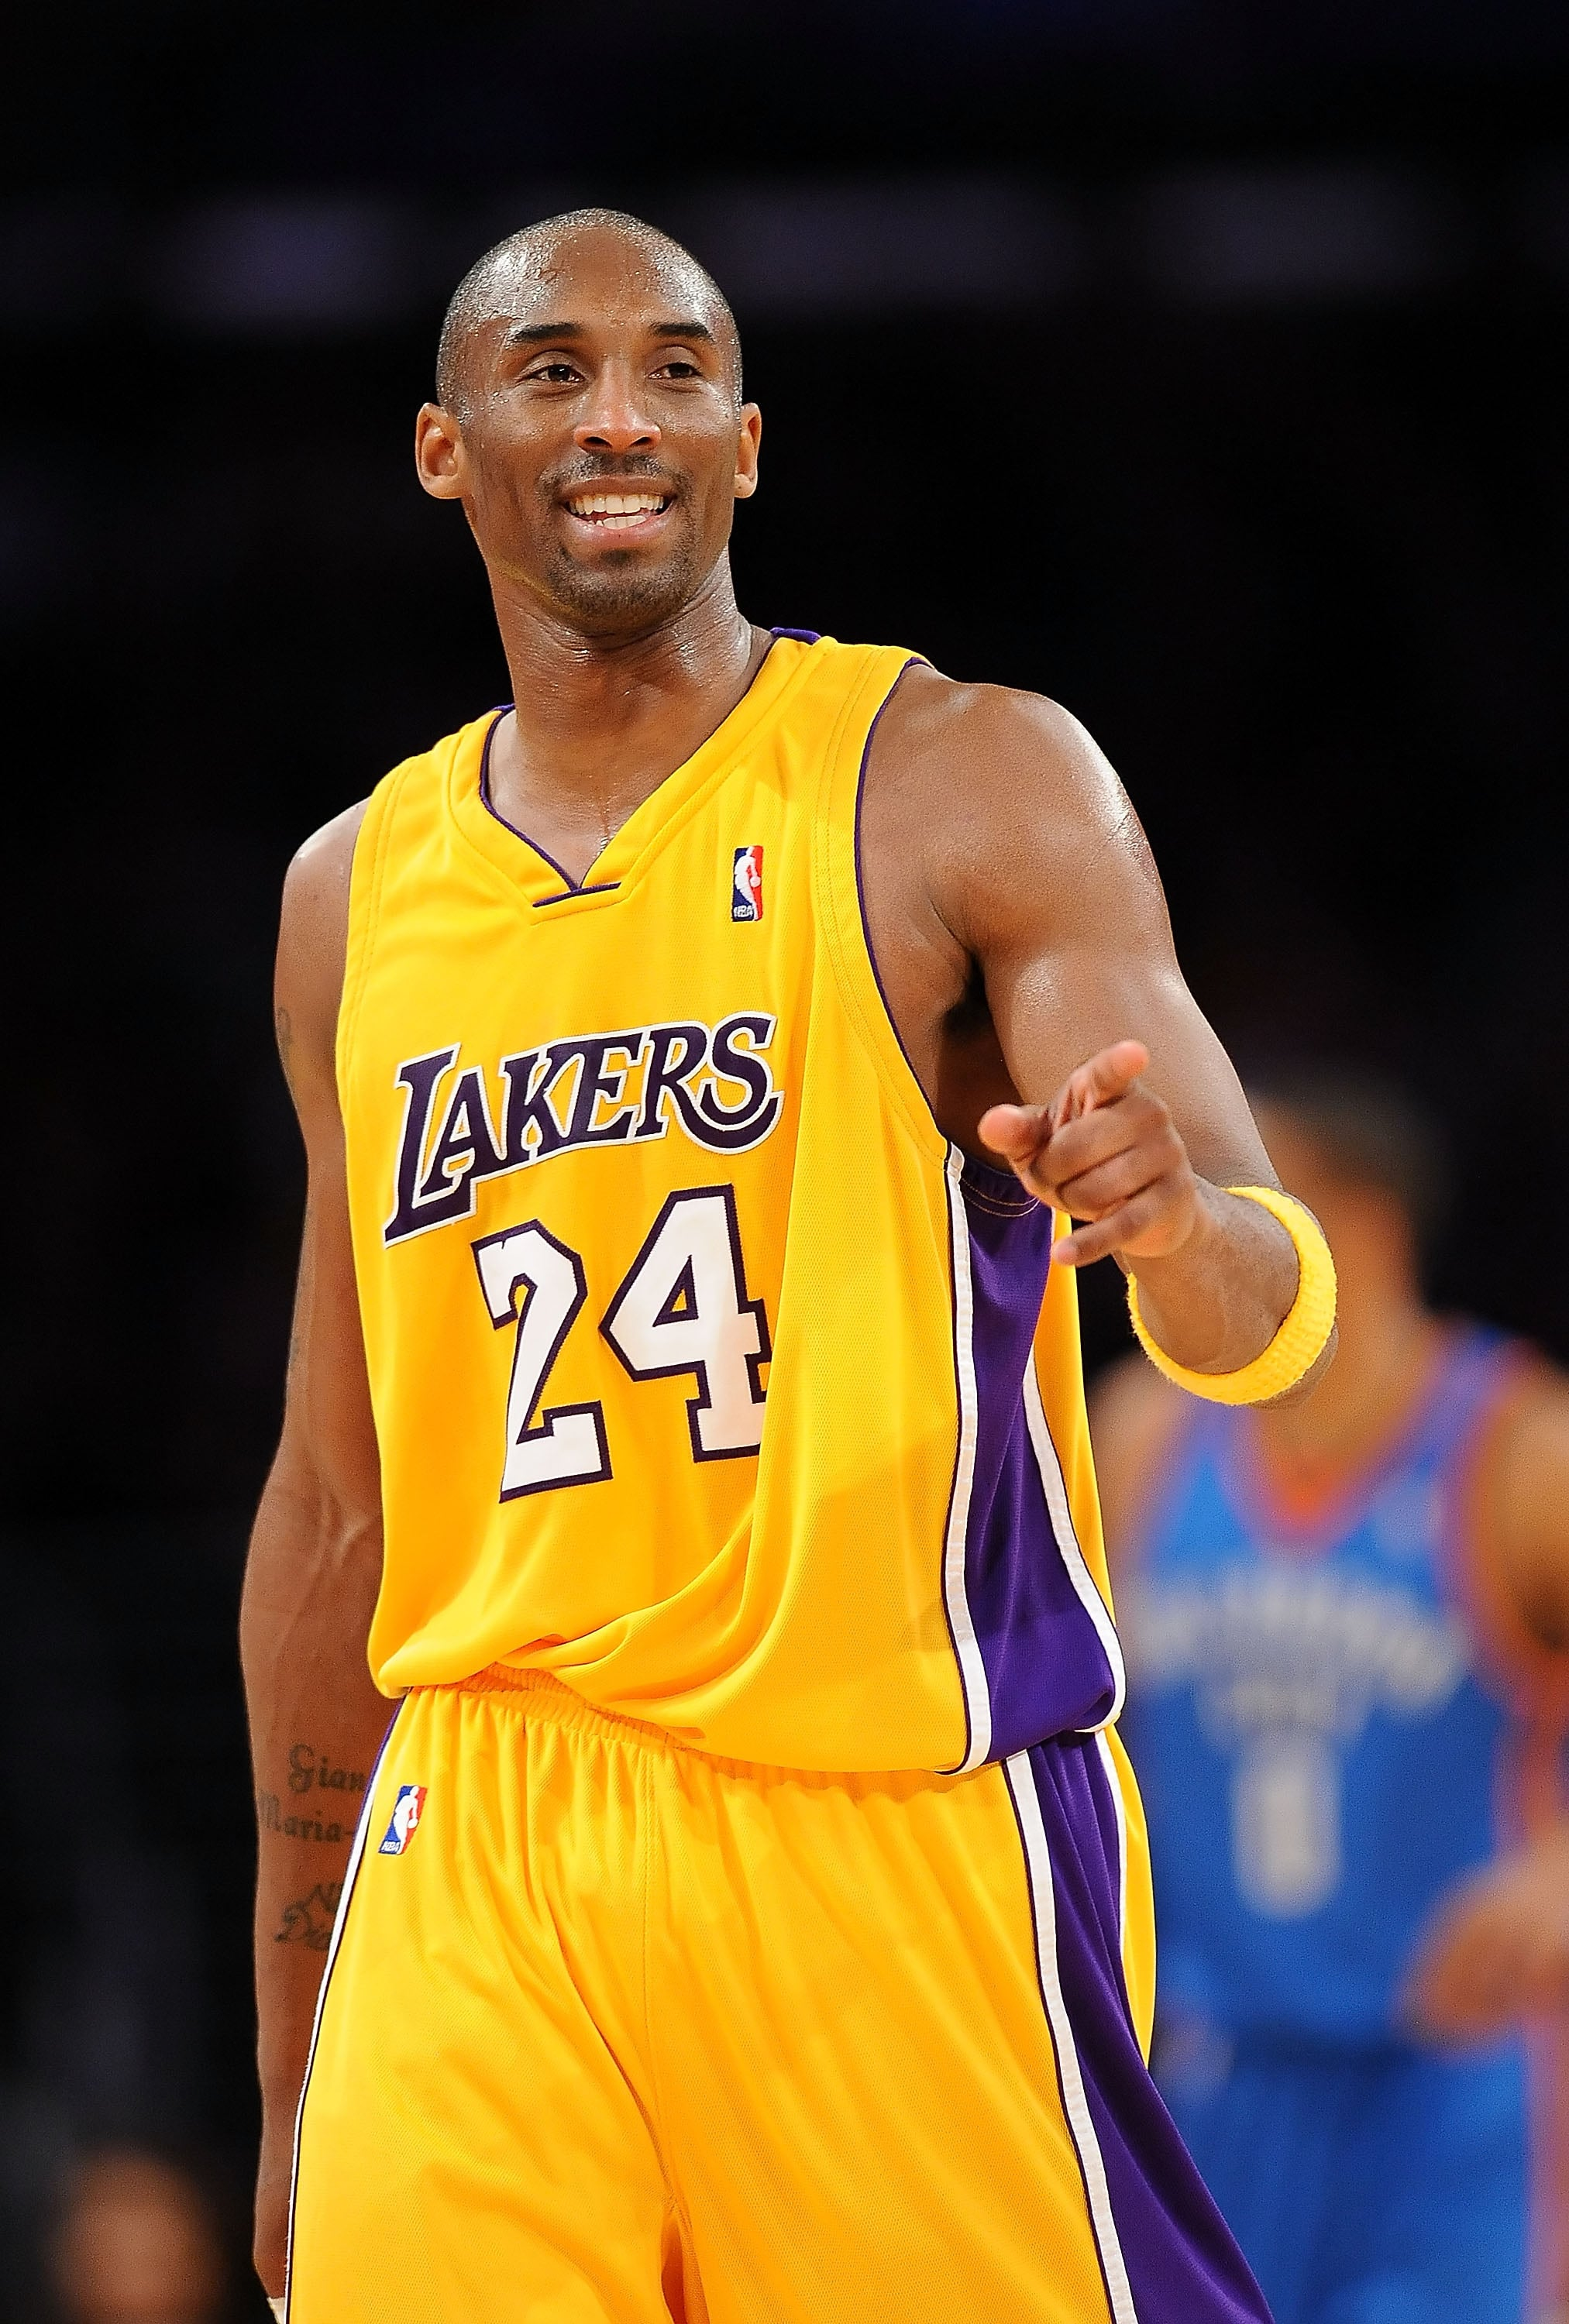 LOS ANGELES, CA - DECEMBER 22:  Kobe Bryant #24 of the Los Angeles Lakers celebrates during the game against the Oklahoma City Thunder at Staples Center on December 22, 2009 in Los Angeles, California. NOTE TO USER: User expressly acknowledges and agrees that, by downloading and or using this photograph, User is consenting to the terms and conditions of the Getty Images License Agreement.  (Photo by Lisa Blumenfeld/Getty Images)